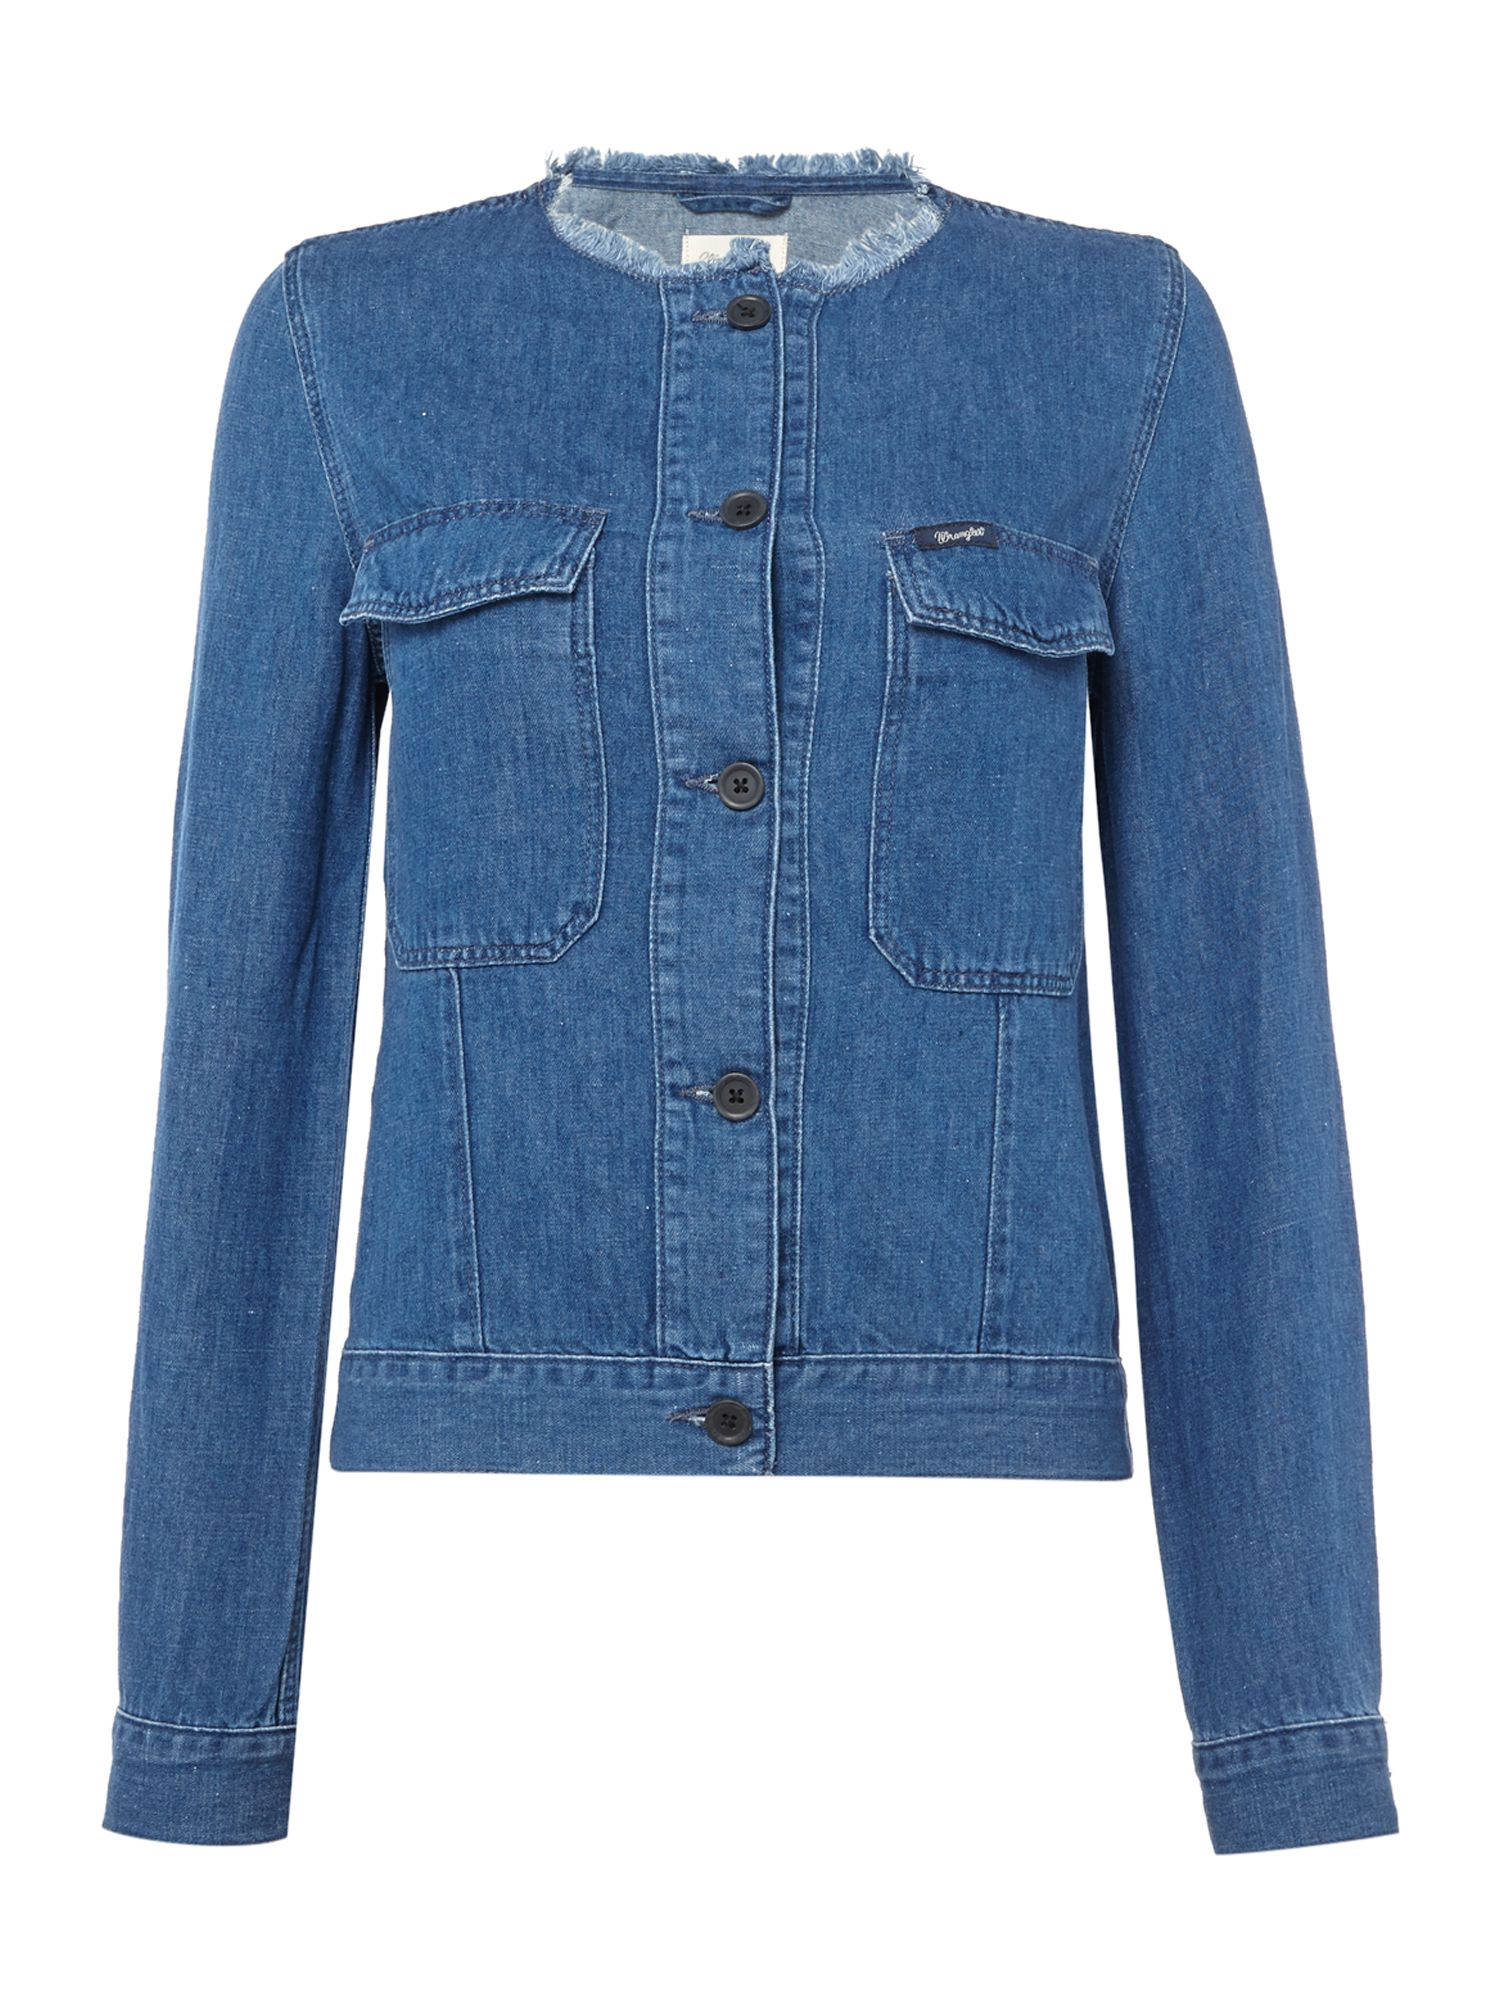 Wrangler Collarless jean jacket in summer breeze, Indigo